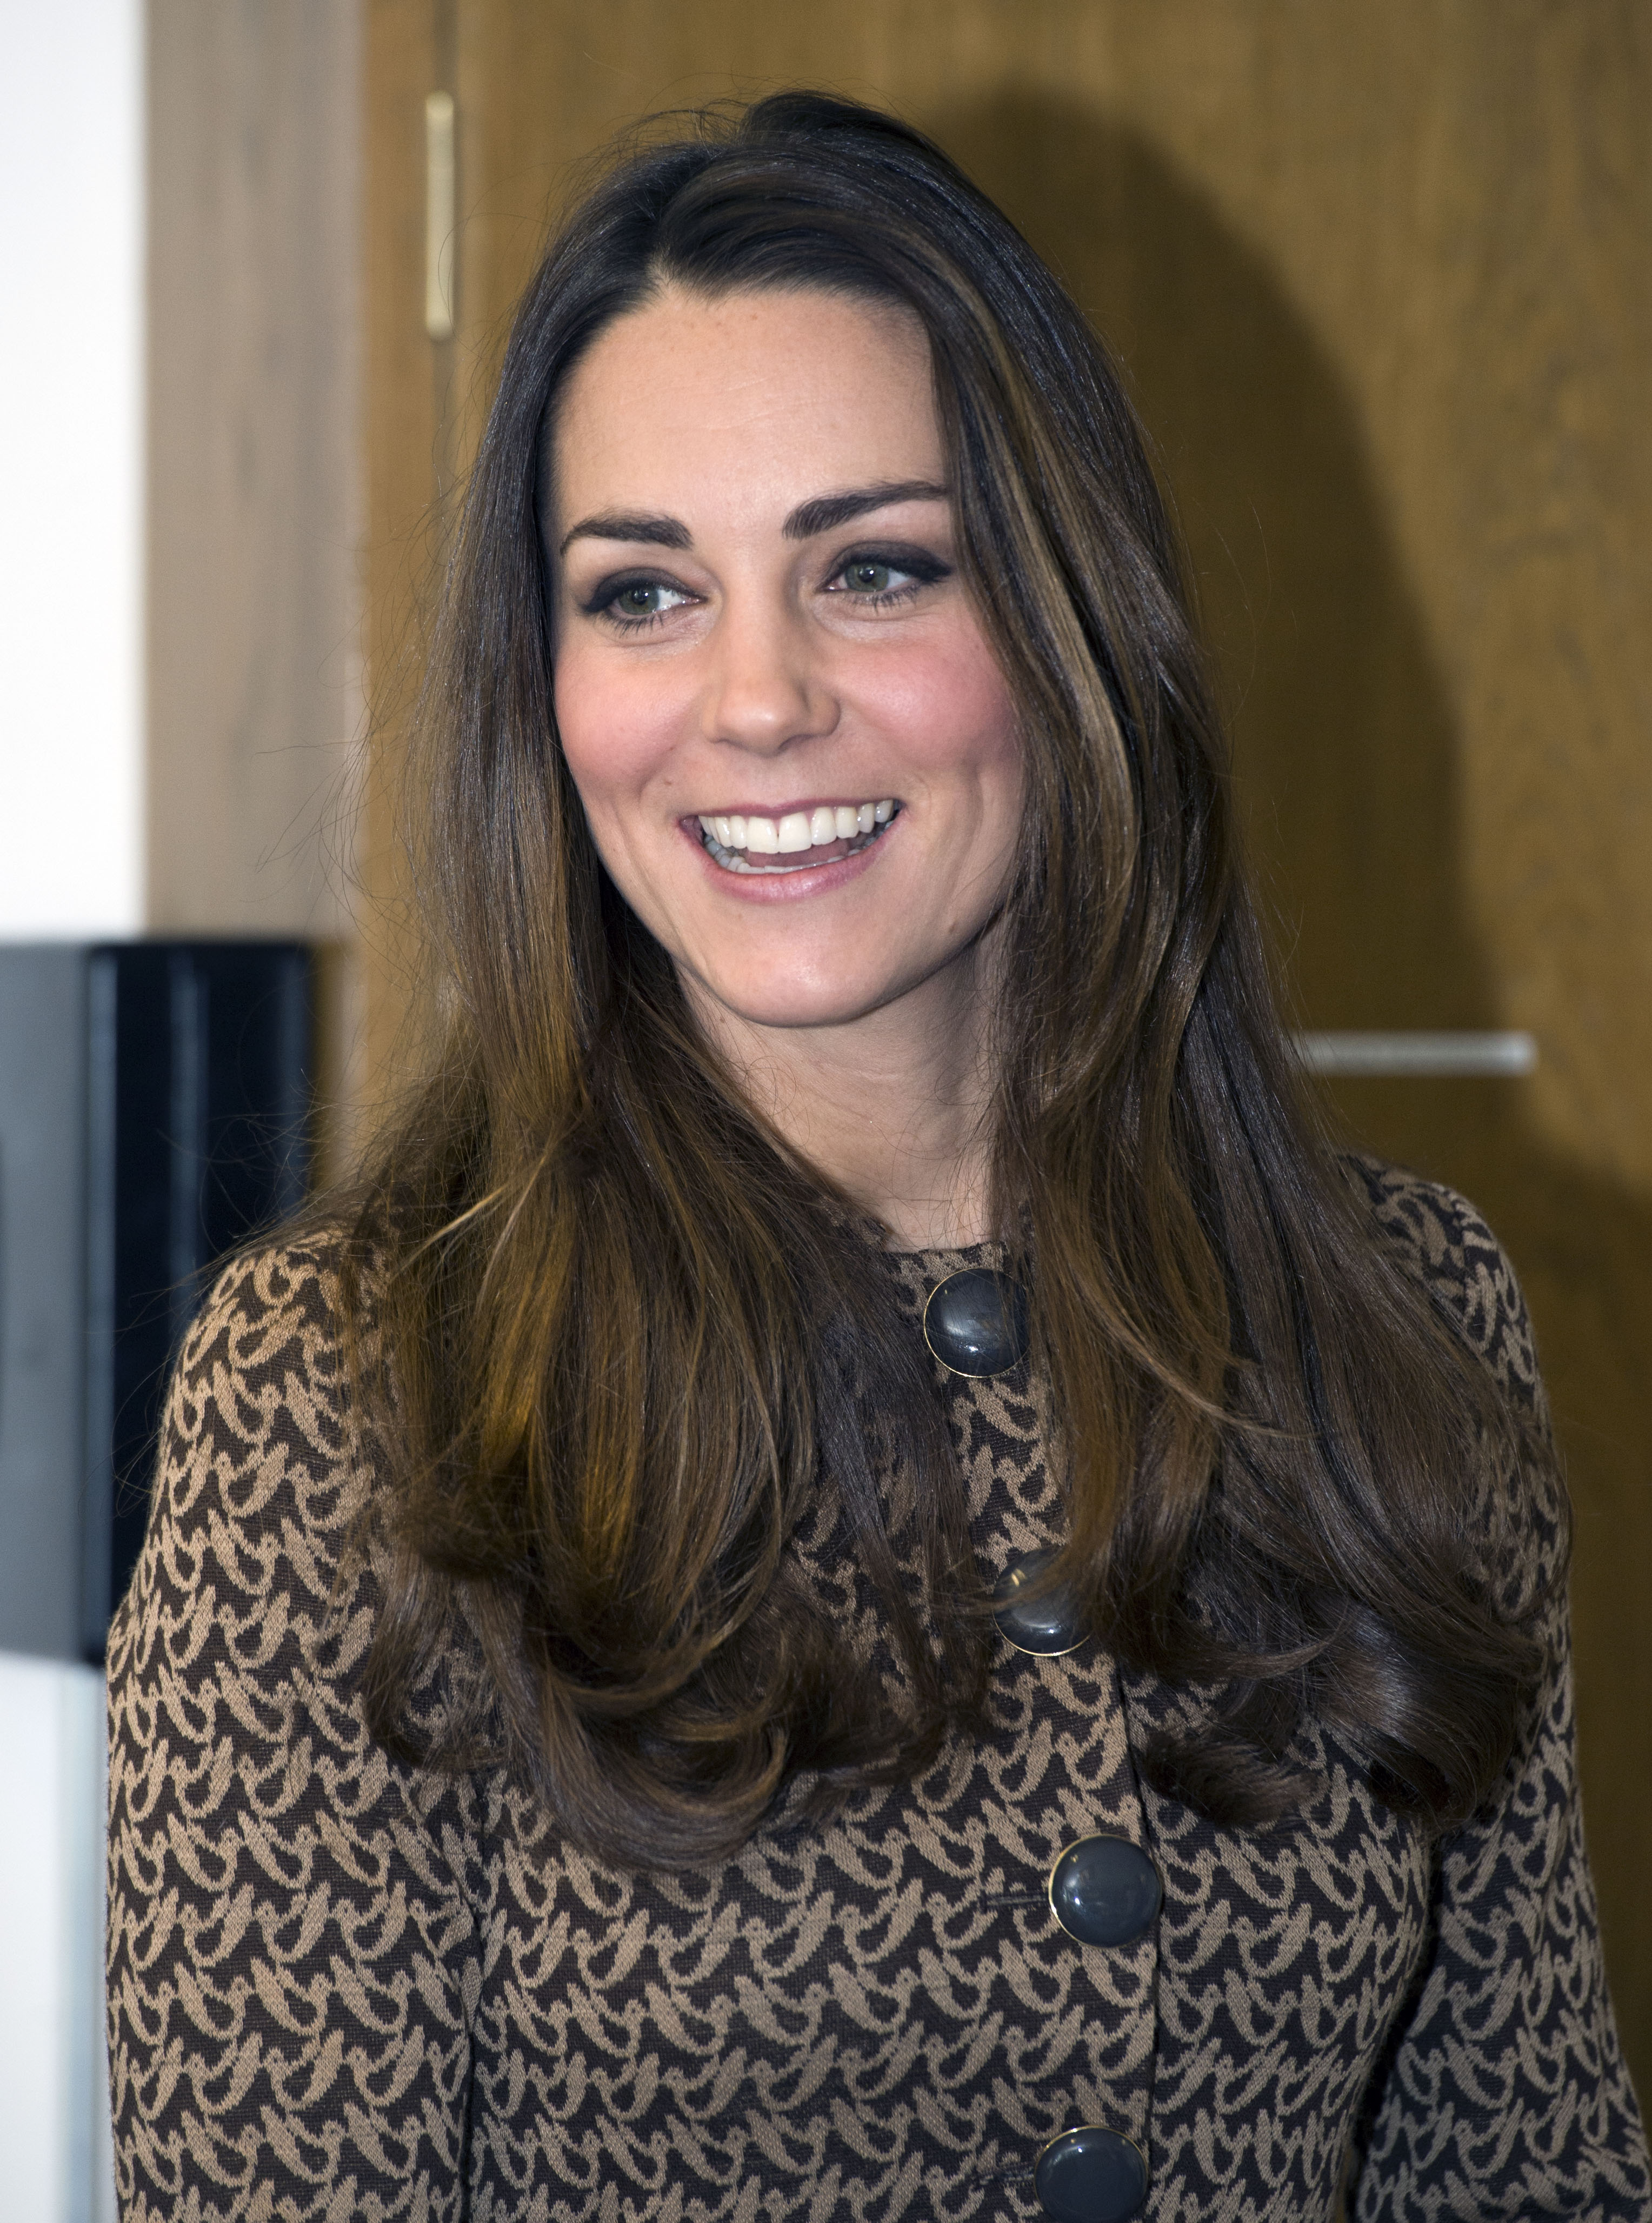 Celebrate Kate Middletons Birthday With 9 Gifs Worthy Of Internet